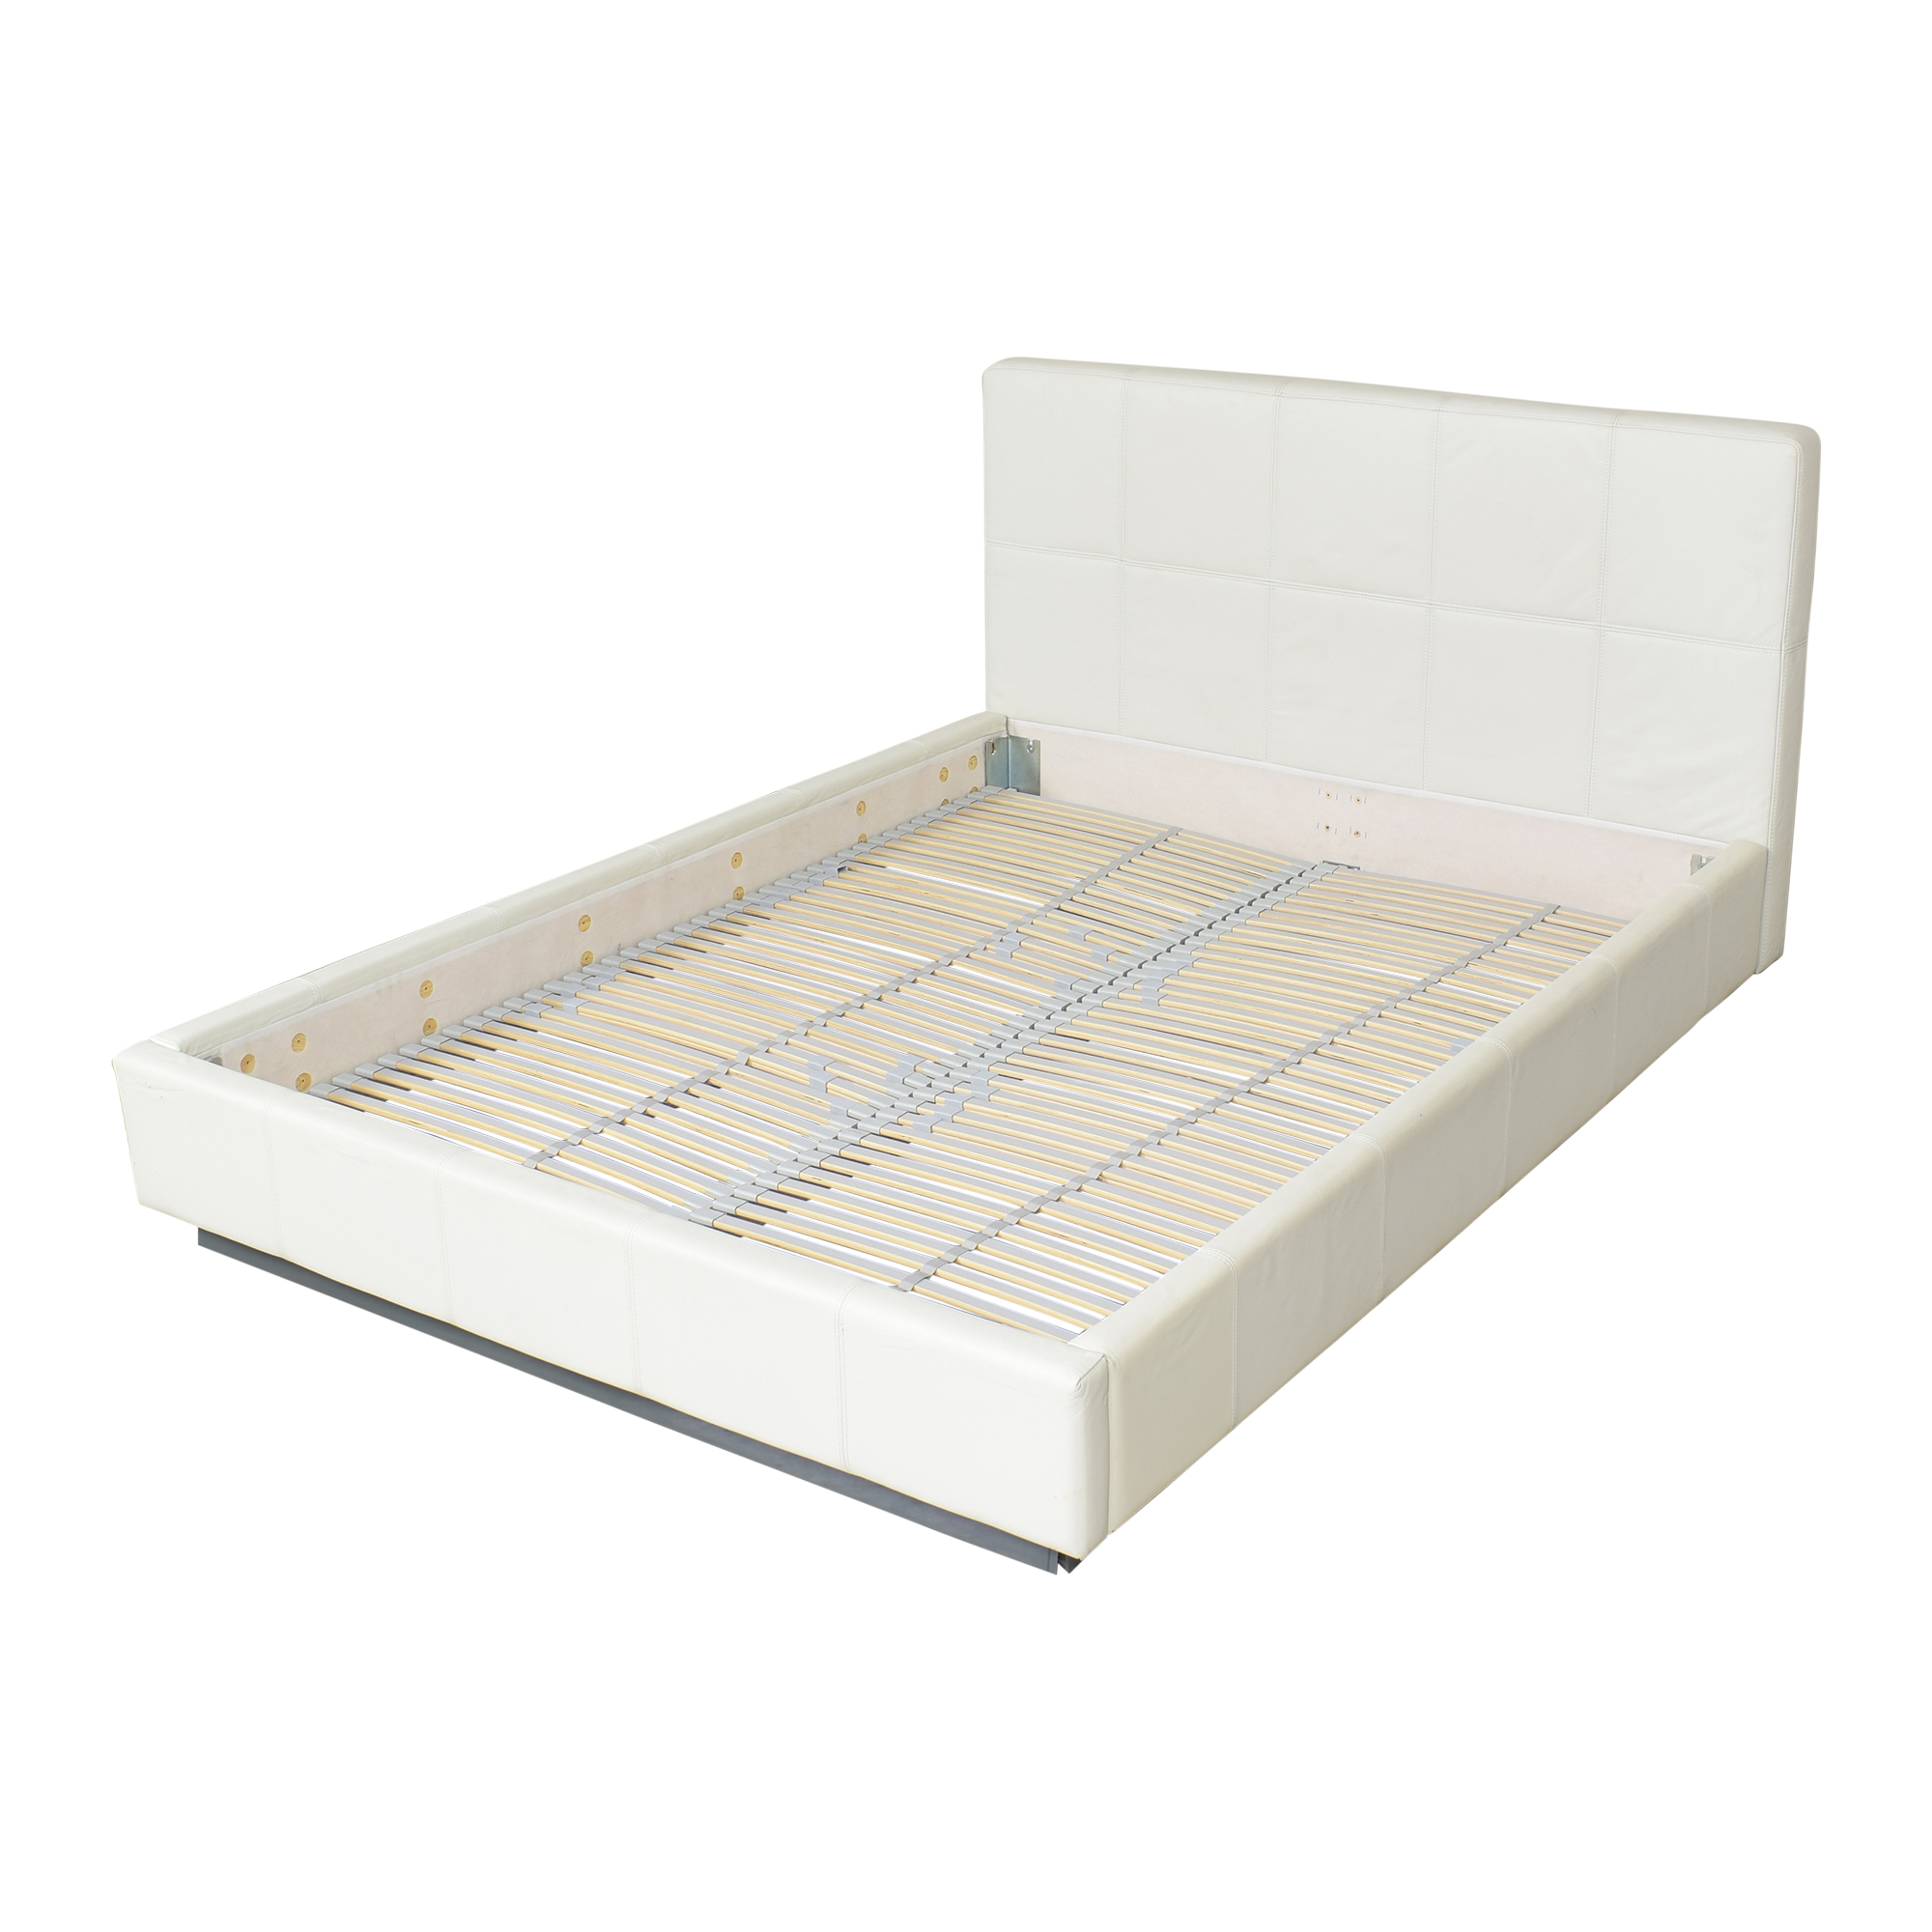 IKEA IKEA Upholstered Queen Bed dimensions